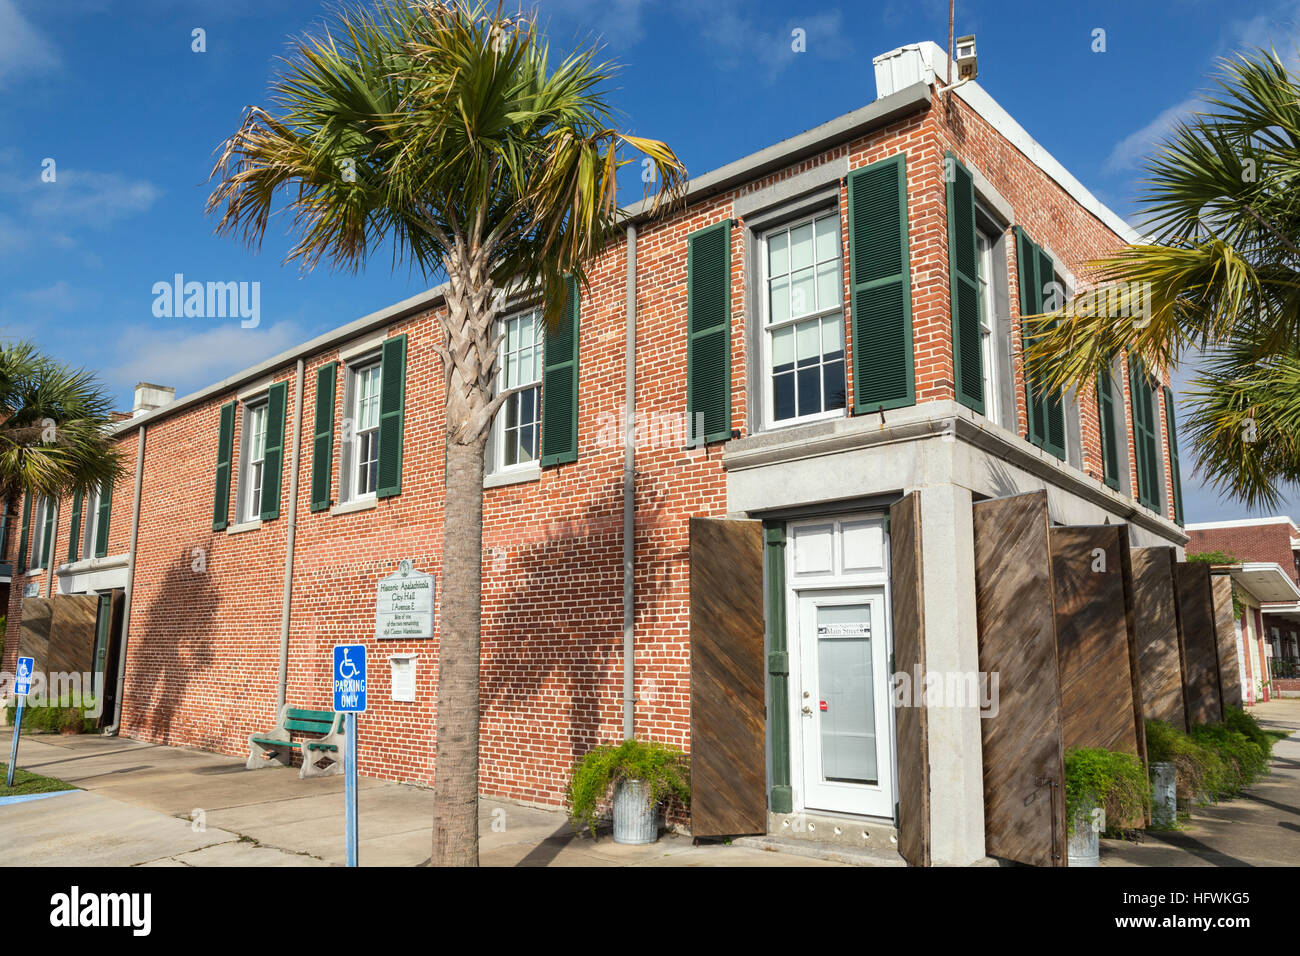 Florida, Historic Apalachicola City Hall at 1 Avenue E, site of one of the two remaining 1838 Cotton Warehouses - Stock Image